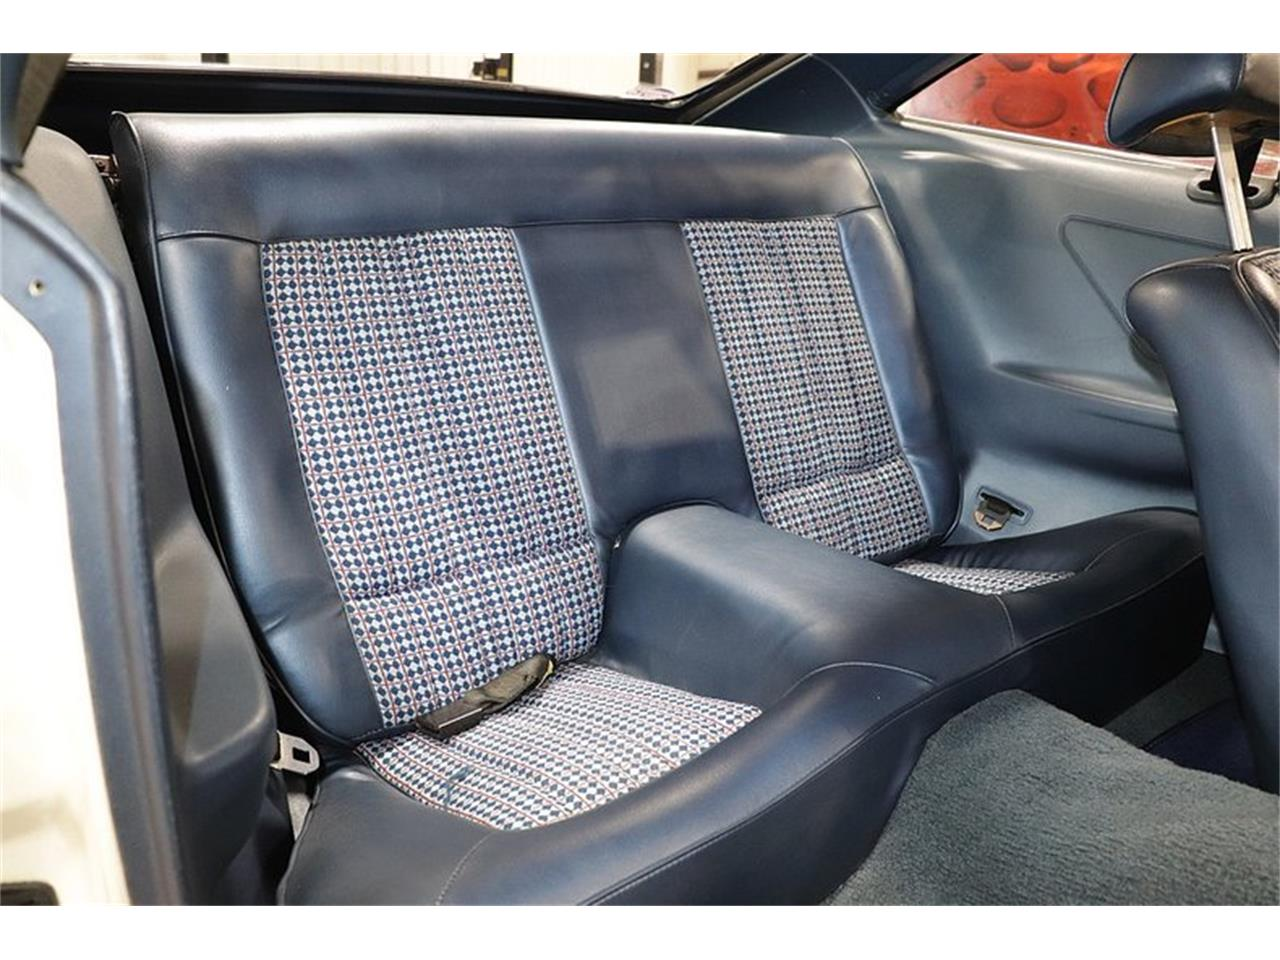 1976 Ford Mustang II Cobra for sale in Kentwood, MI – photo 22